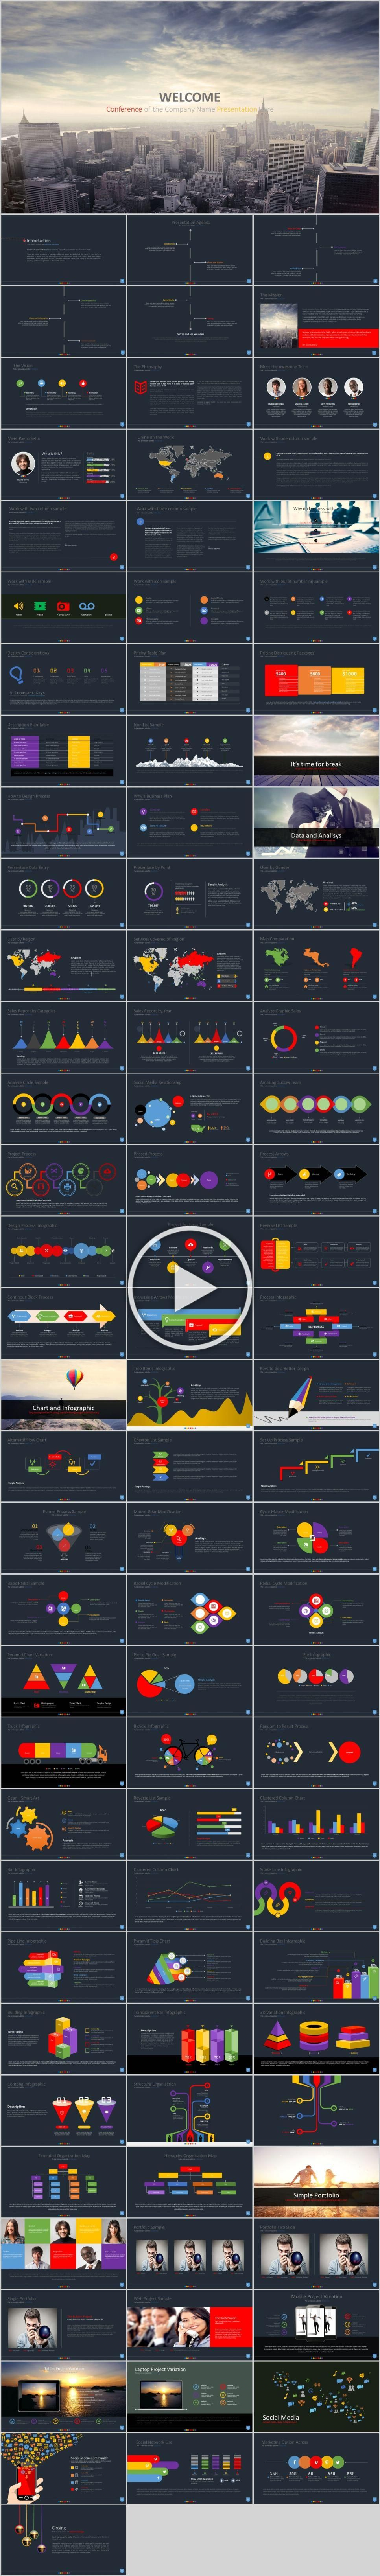 98 company report infographic PowerPoint template 98 company report infographic PowerPoint template  The highest quality PowerPoint Templates and Keynote Templates downlo...